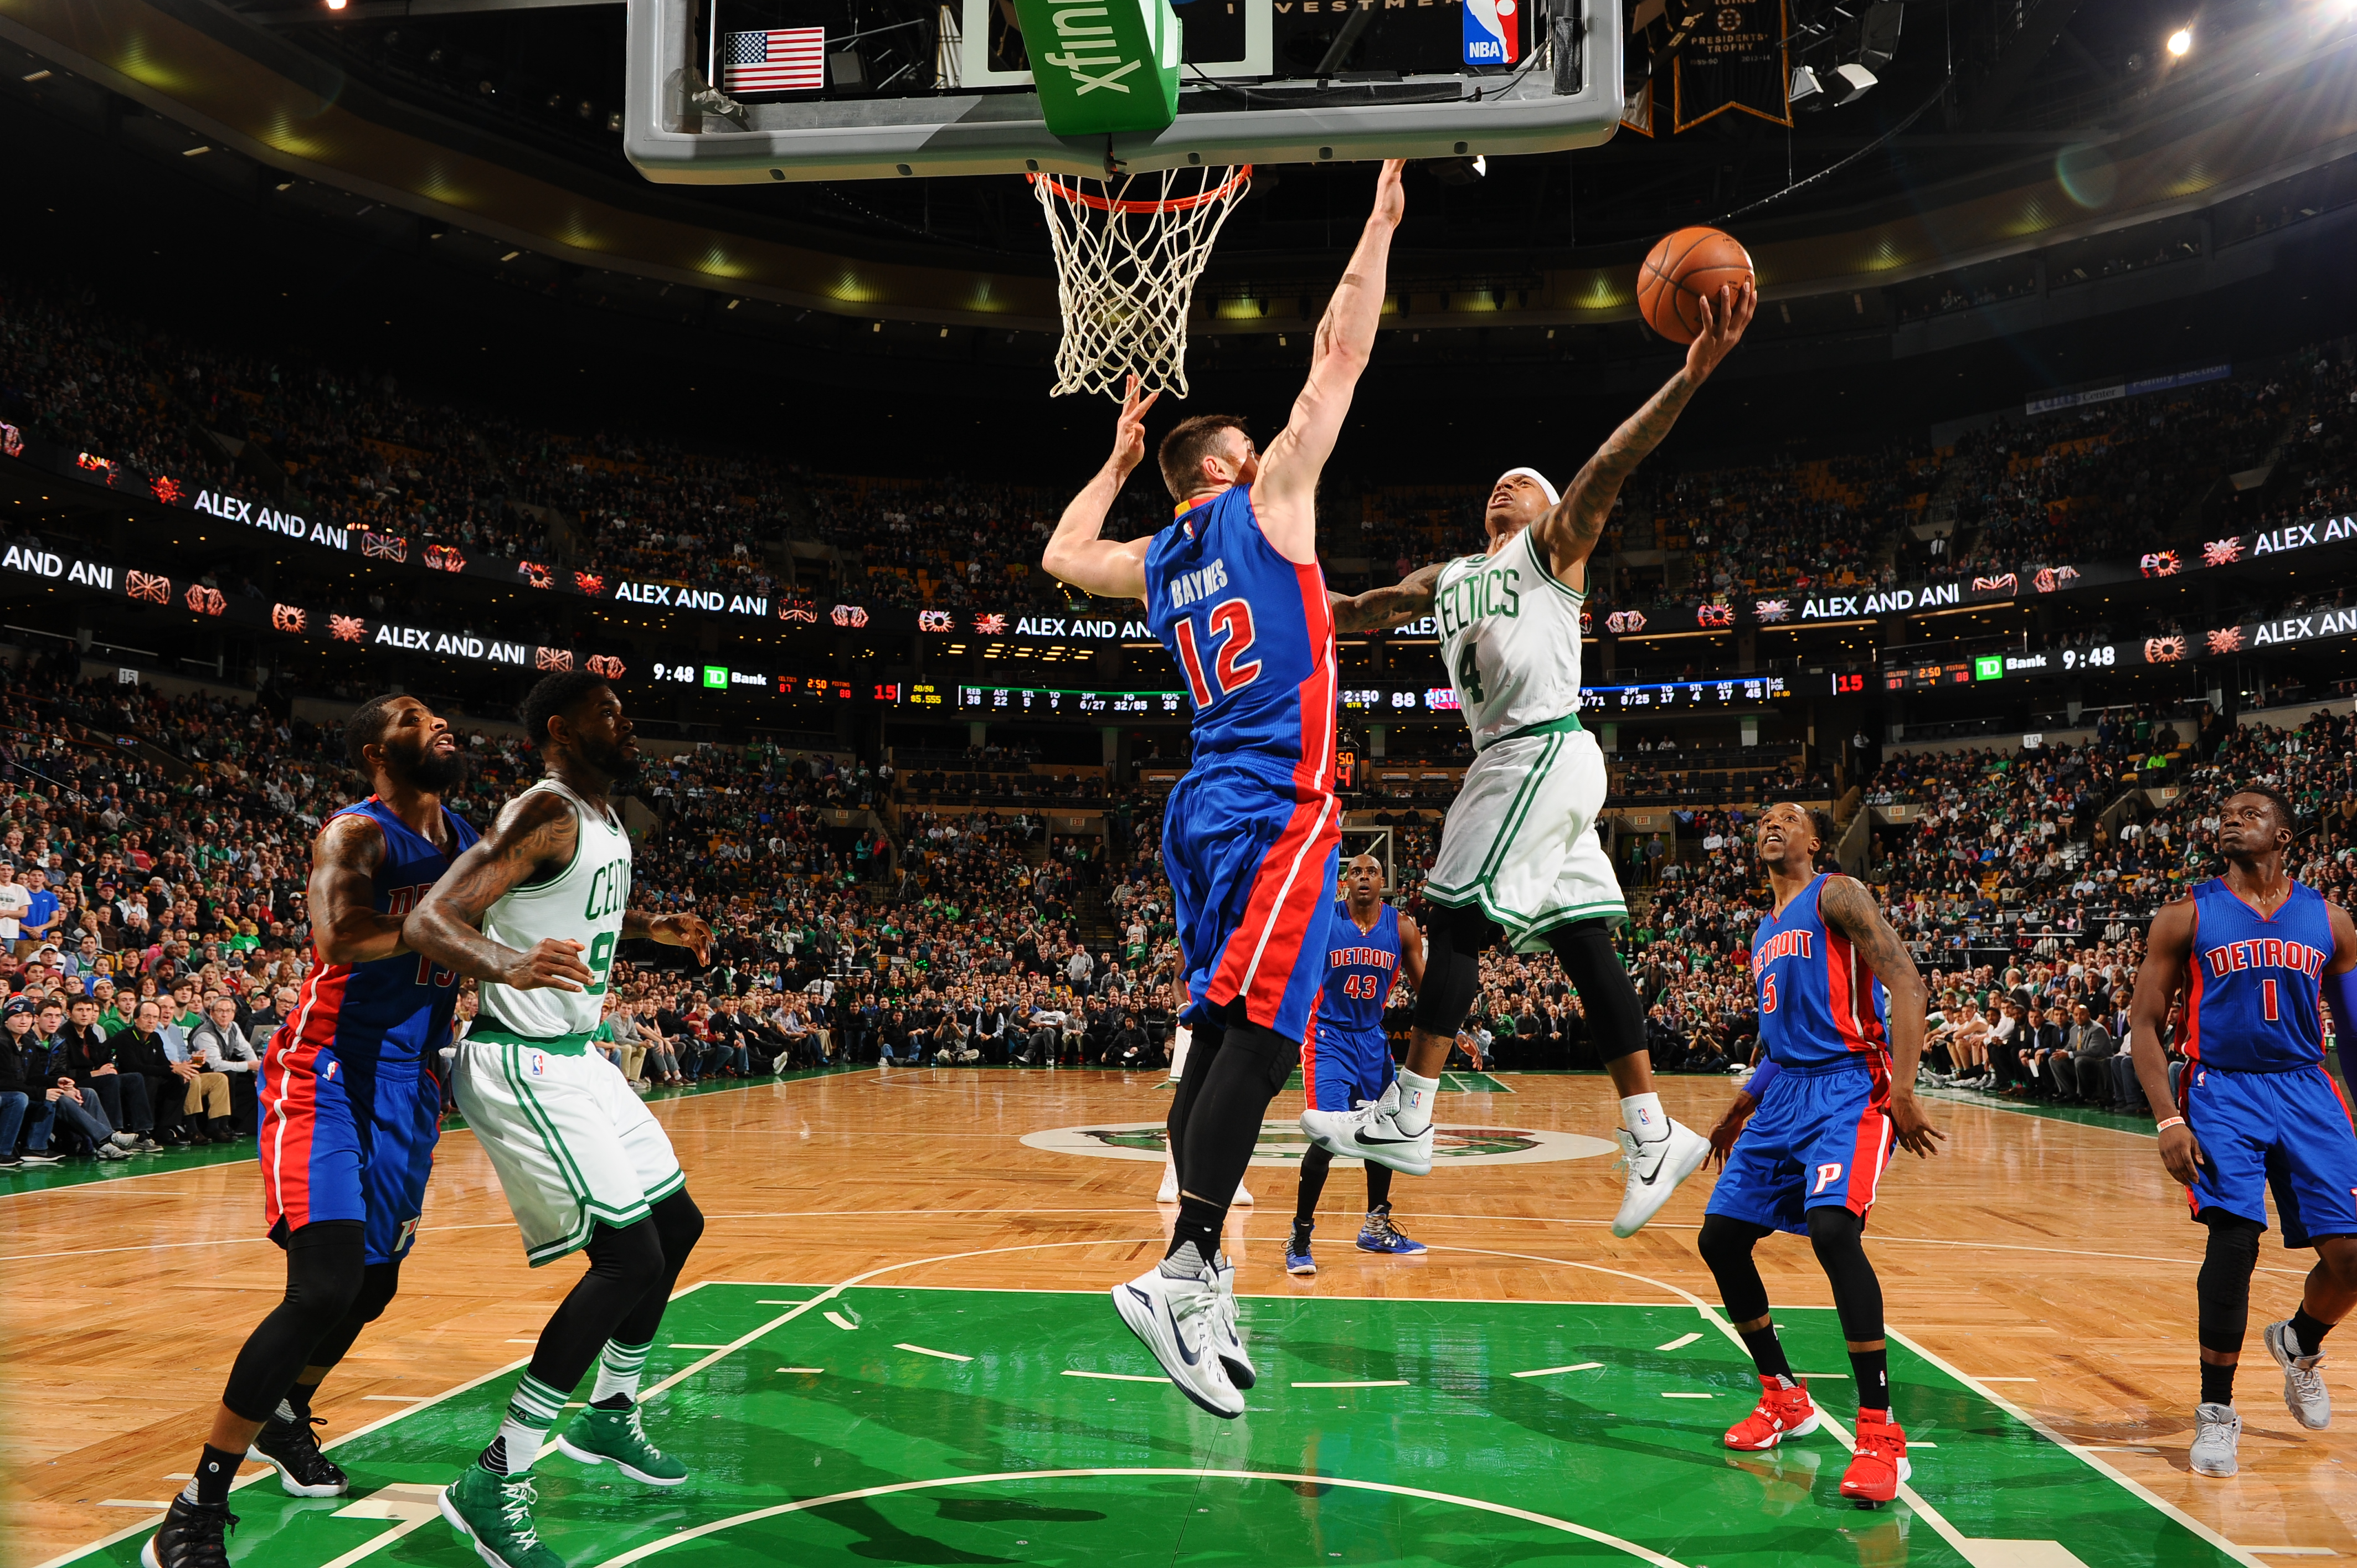 BOSTON, MA - JANUARY 6: Isaiah Thomas #4 of the Boston Celtics goes for the lay up against Aron Baynes #12 of the Detroit Pistons during the game on January 6, 2016 at TD Garden in Boston, Massachusetts. (Photo by Brian Babineau/NBAE via Getty Images)